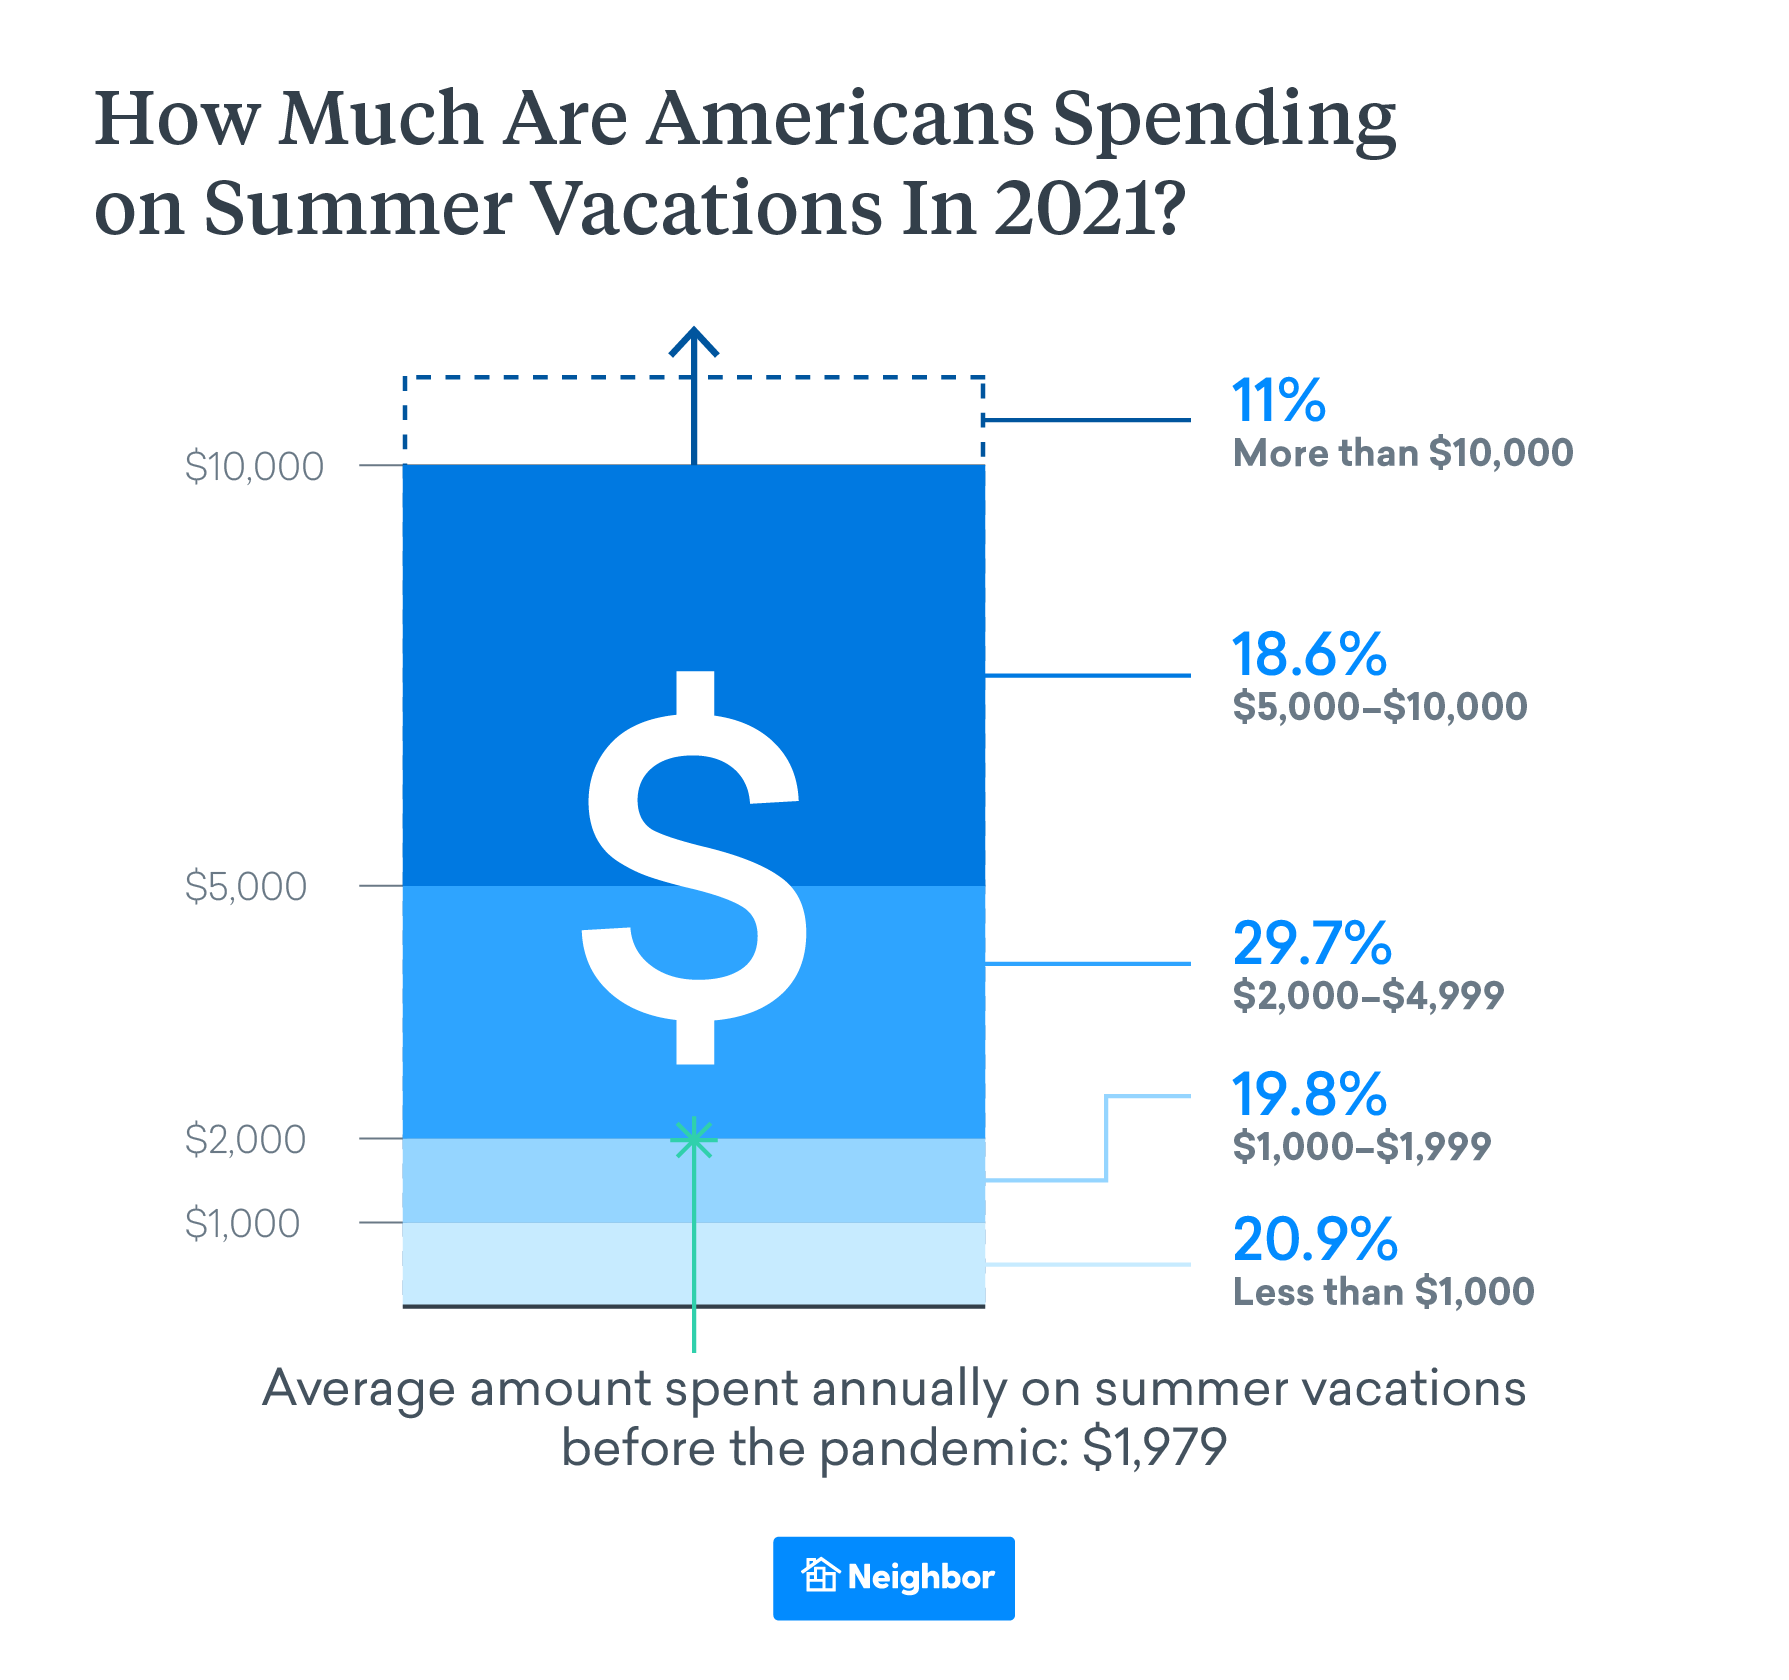 Americans Are Spending Slightly More than Average on Vacations This Summer